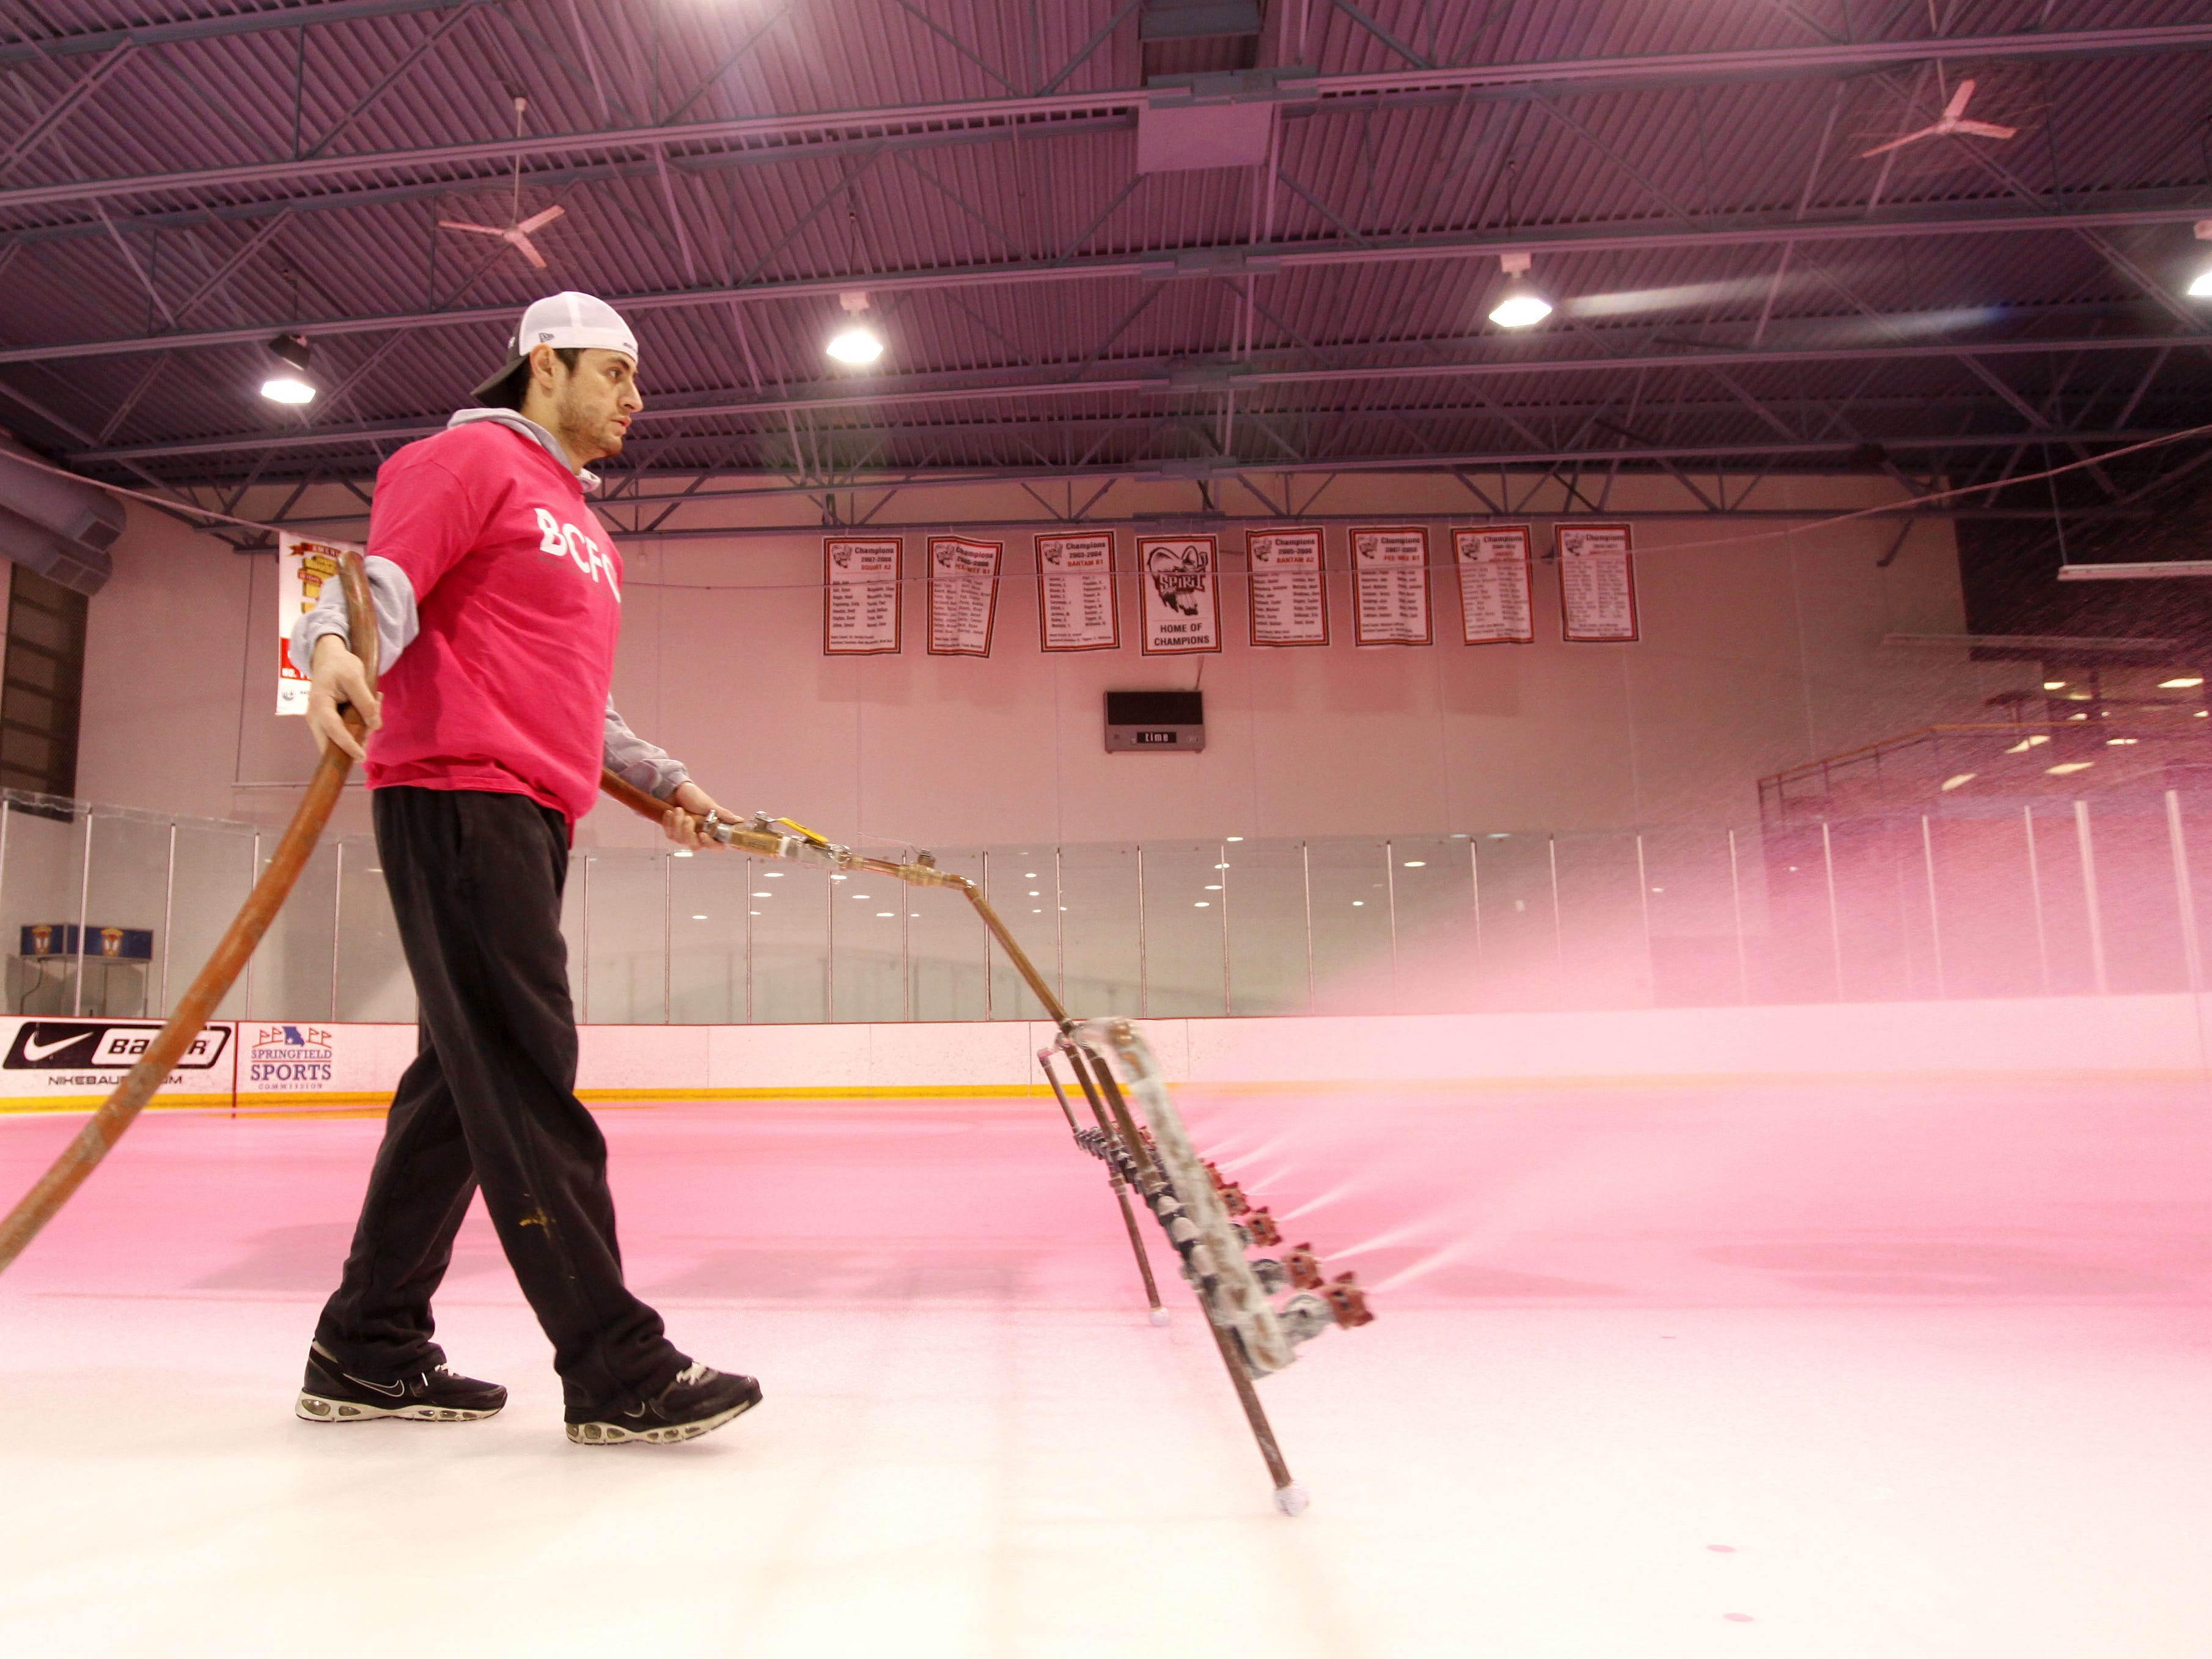 Using a specialized mister, Miguel Franco, a manager at the Mediacom Ice Park, paints the ice pink to raise awareness for breast cancer.